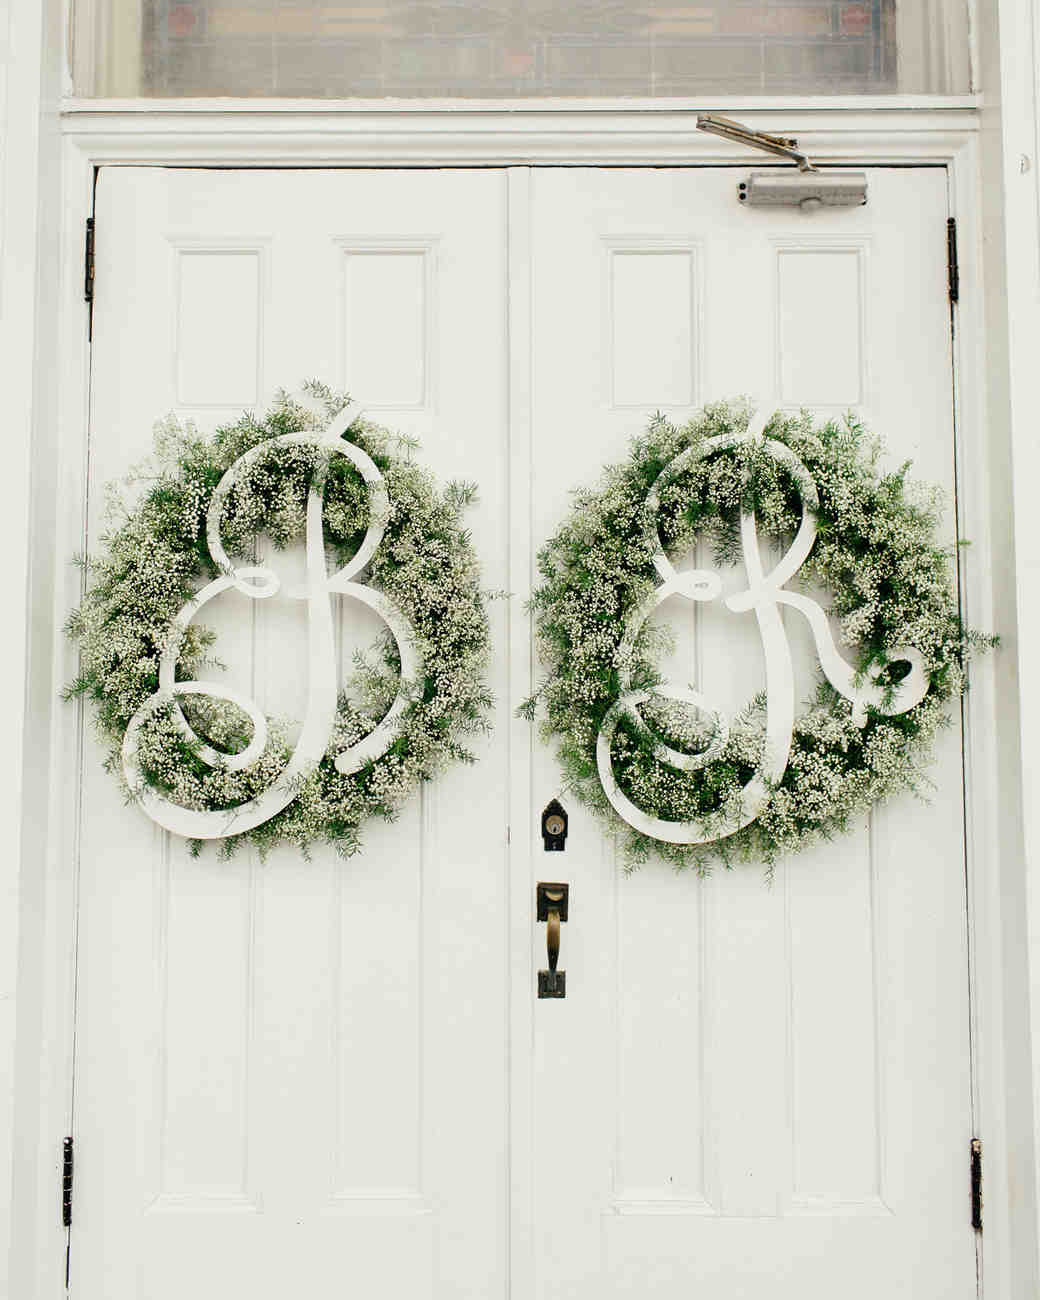 wedding wreaths monogramed hanging on white double doors